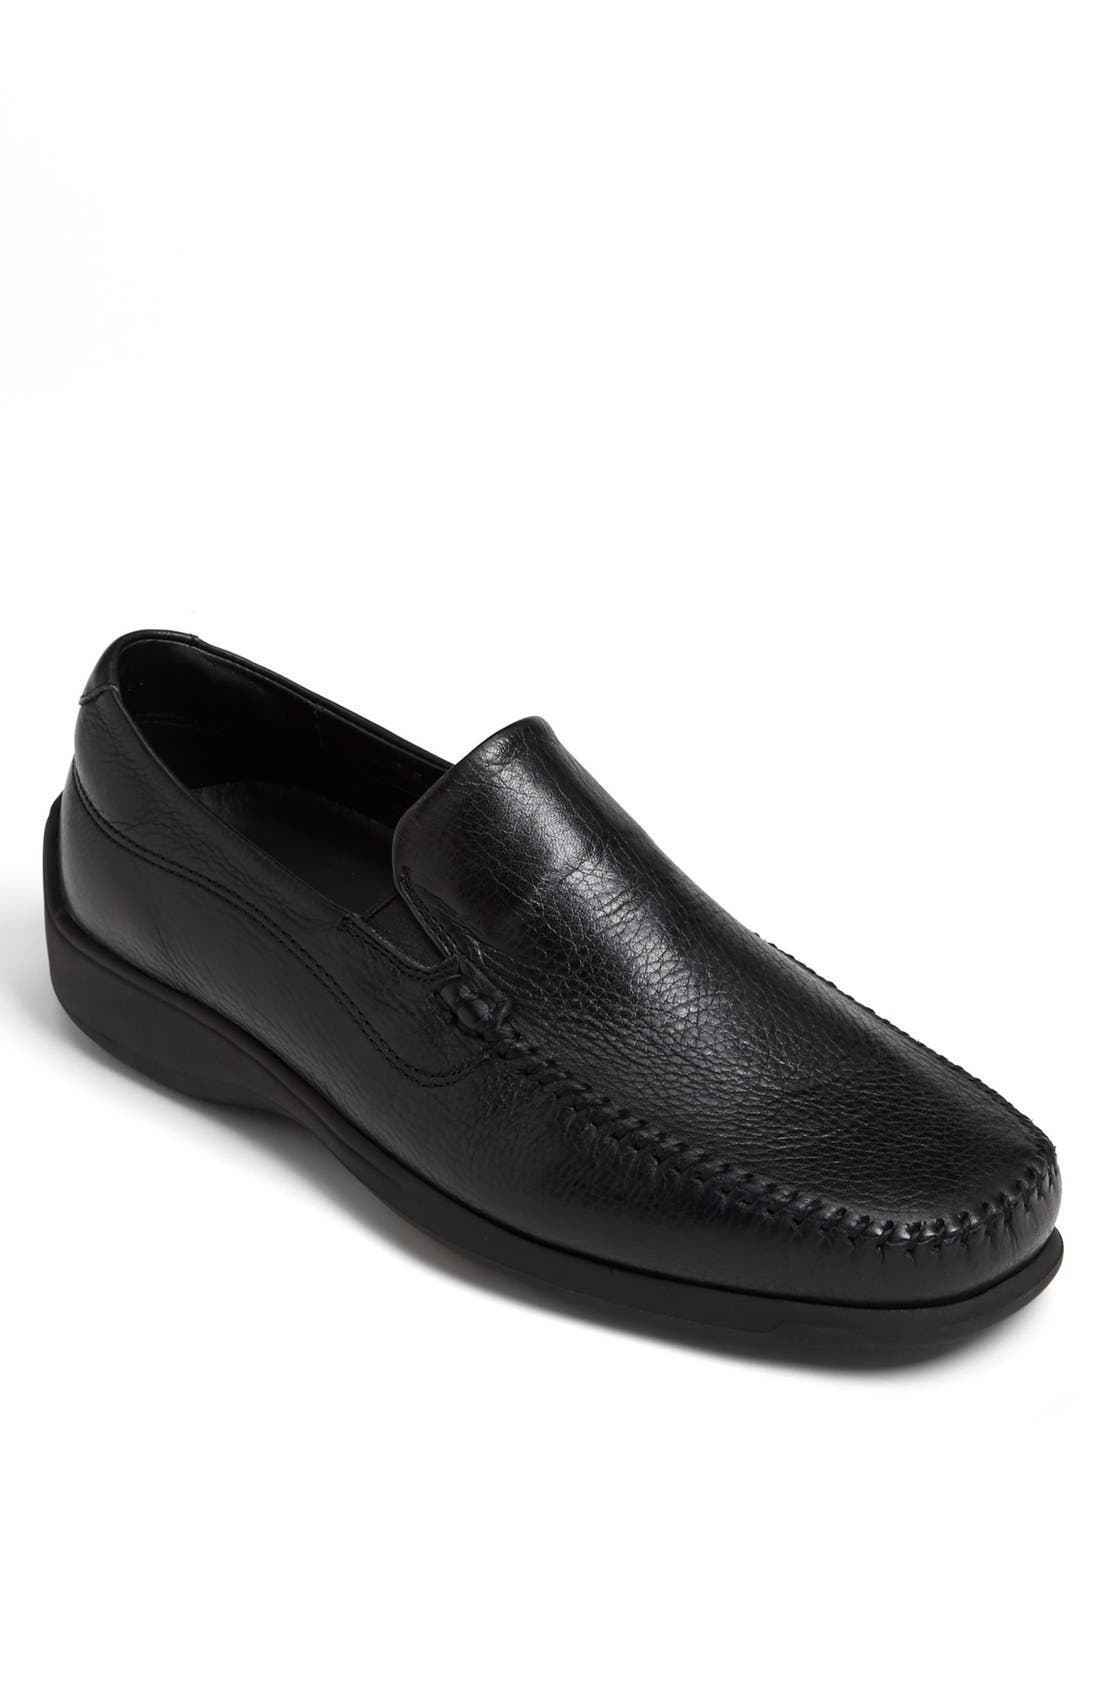 Neil M 'Rome' Loafer